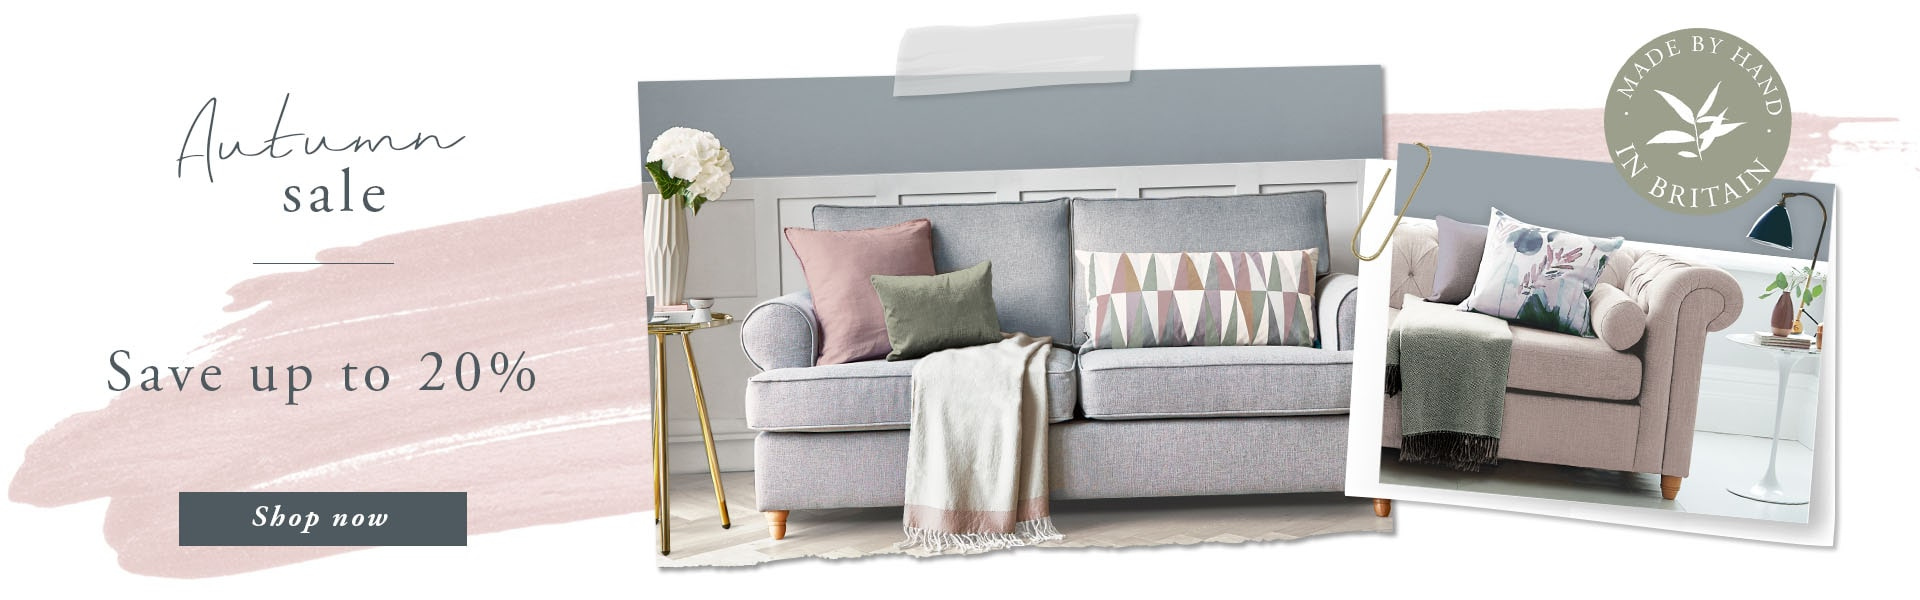 Picture of: Luxury British Handmade Sofas Sofa Beds Beds Willow Hall